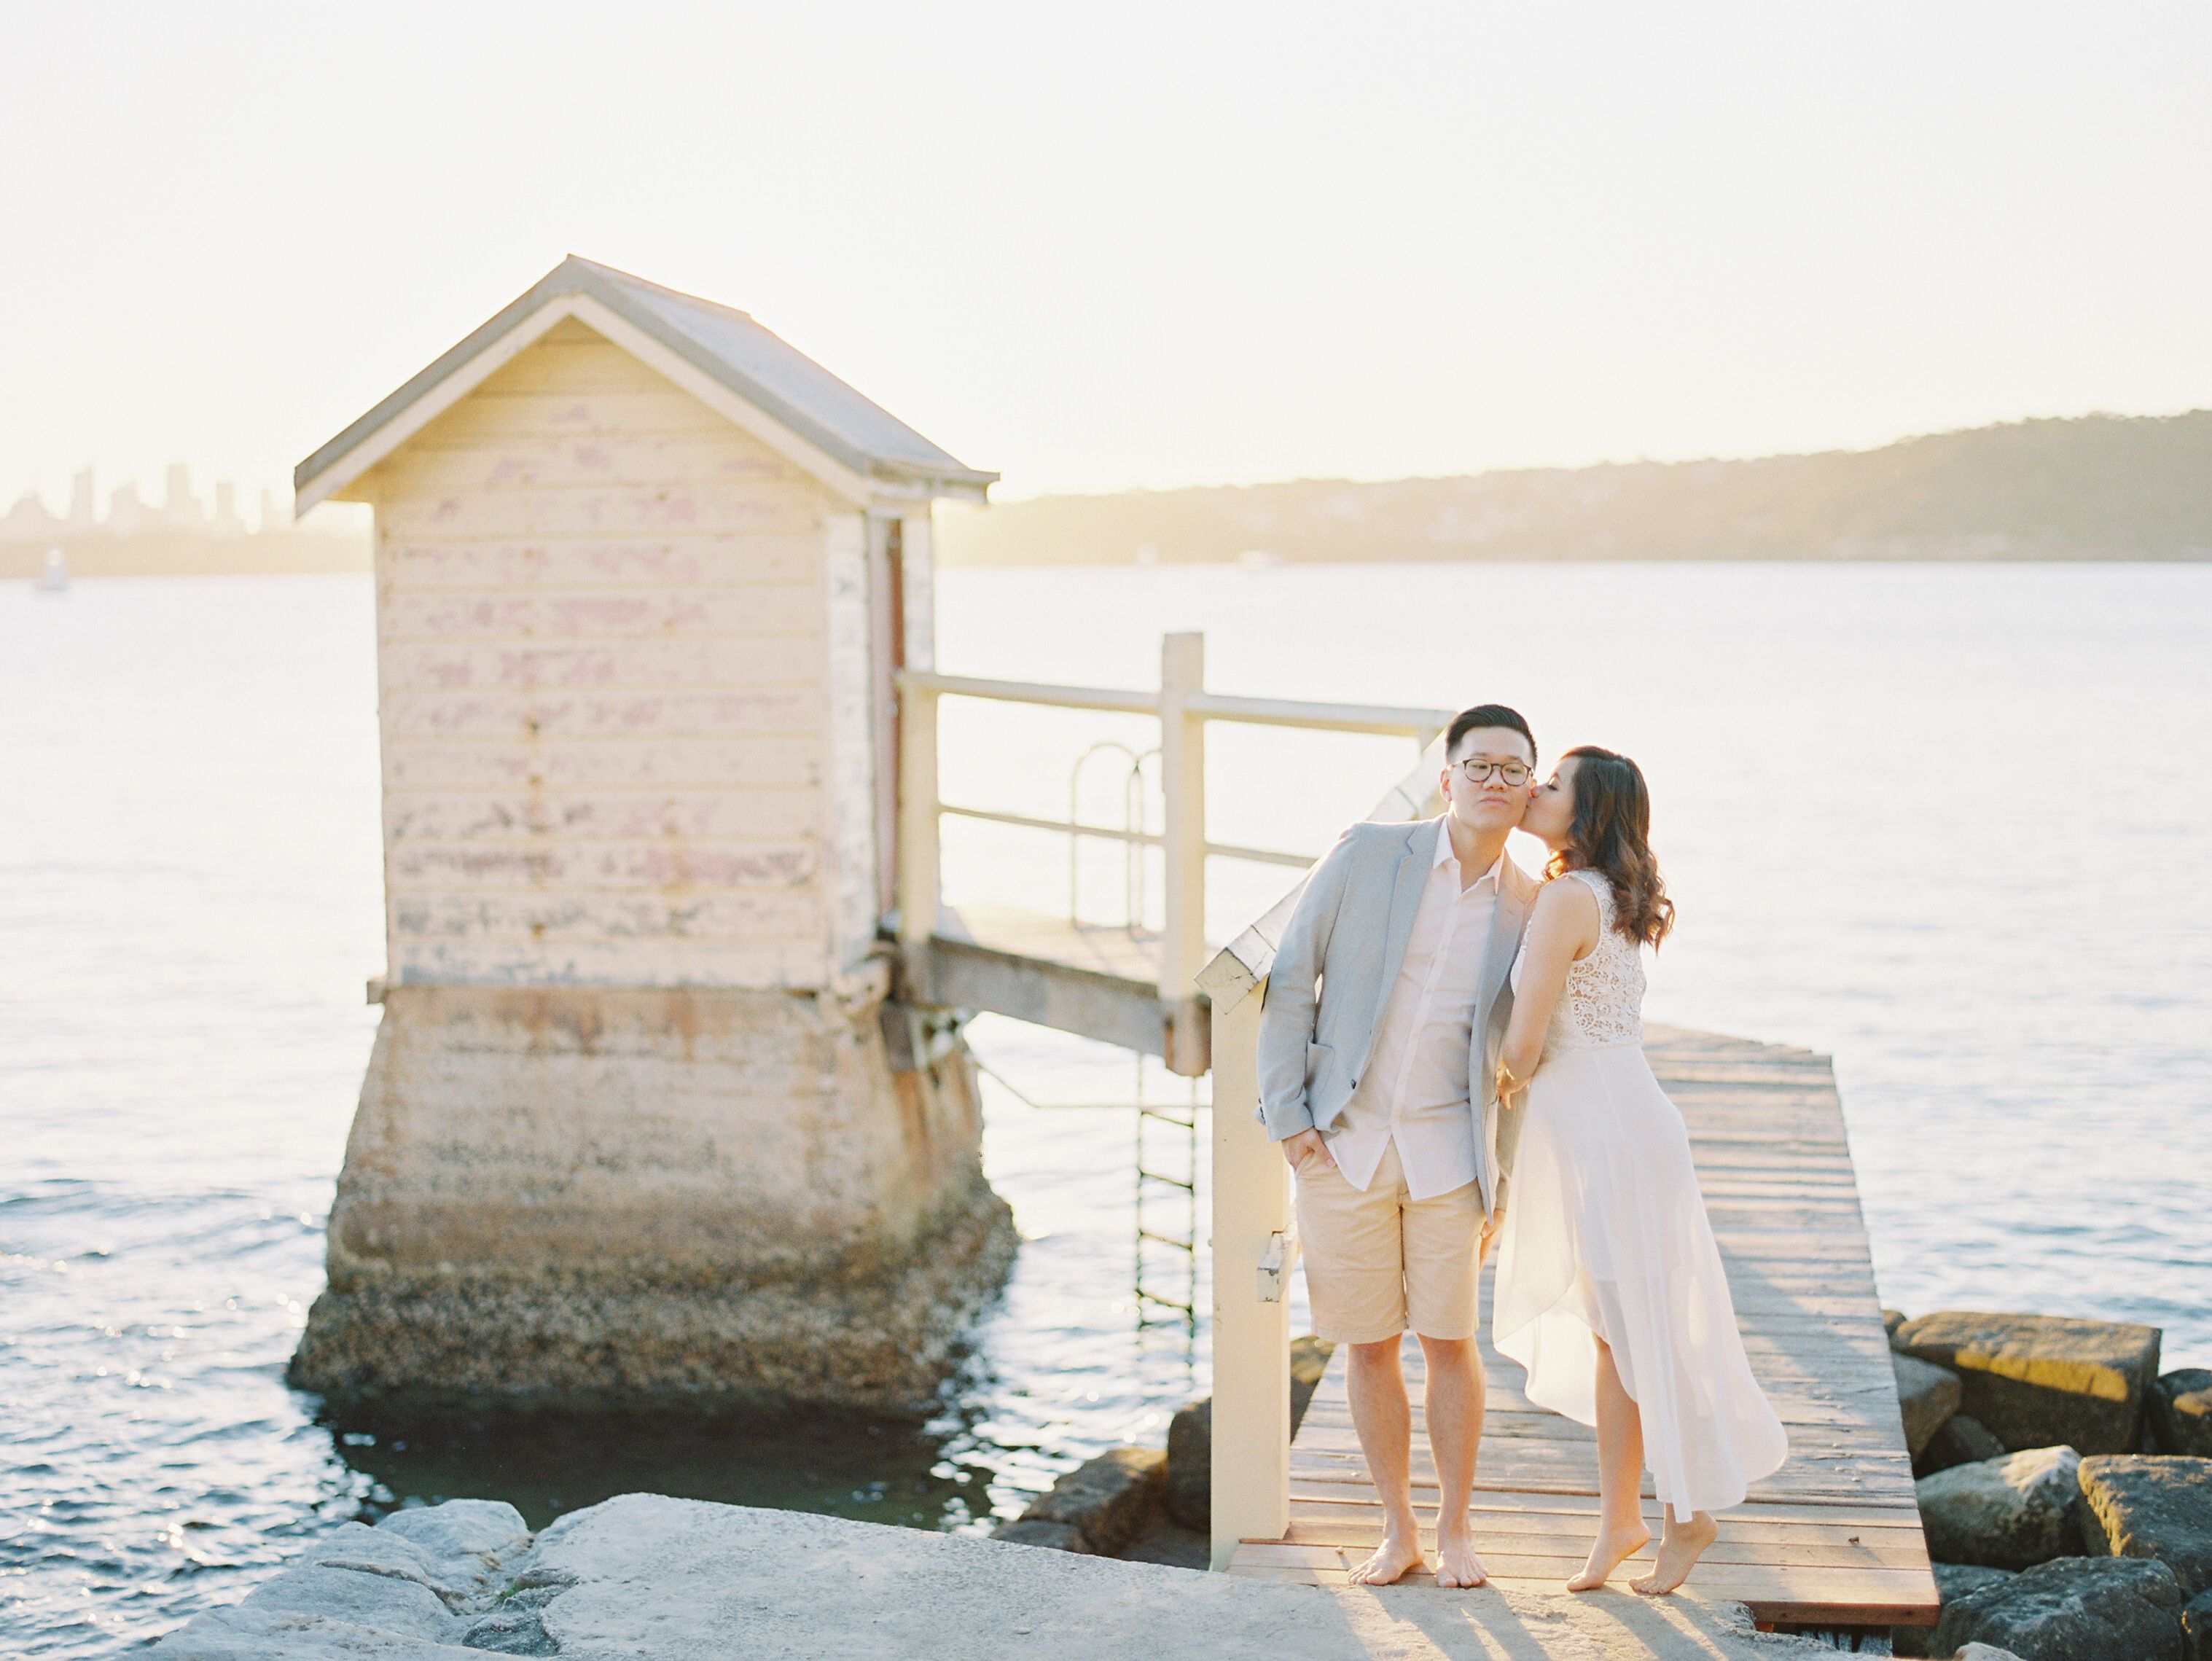 Beach wedding pre shoot  Golden hour for engagement and pre wedding photos at the beach is